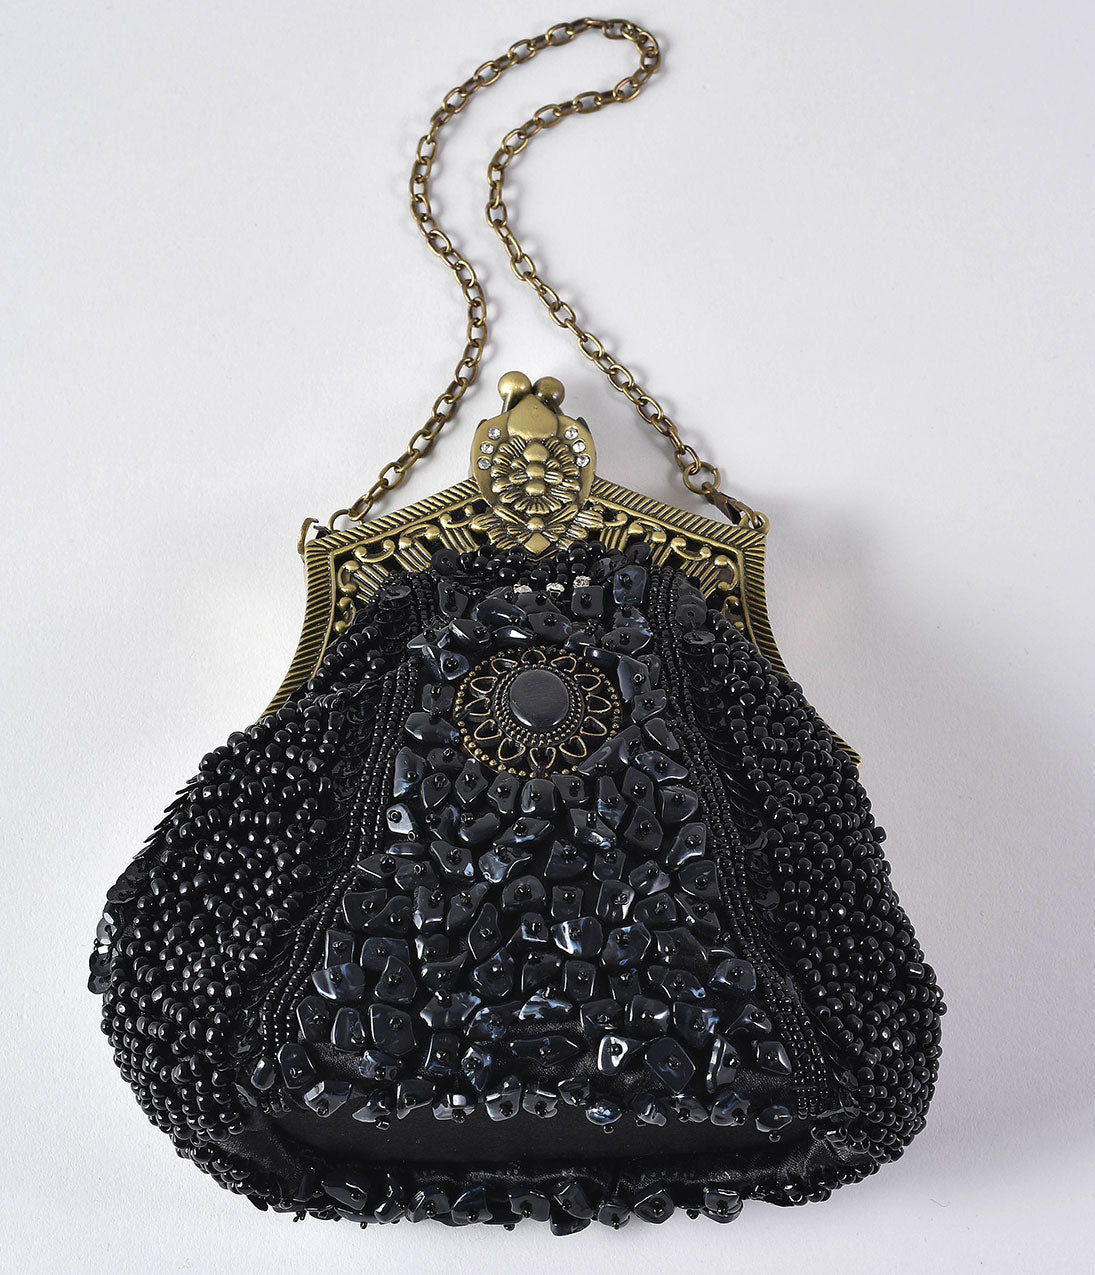 1920s Accessories: Feather Boa, Cigarette Holder, Flask Unique Vintage 1920S Style Black Beaded Top Frame Flapper Purse $72.00 AT vintagedancer.com